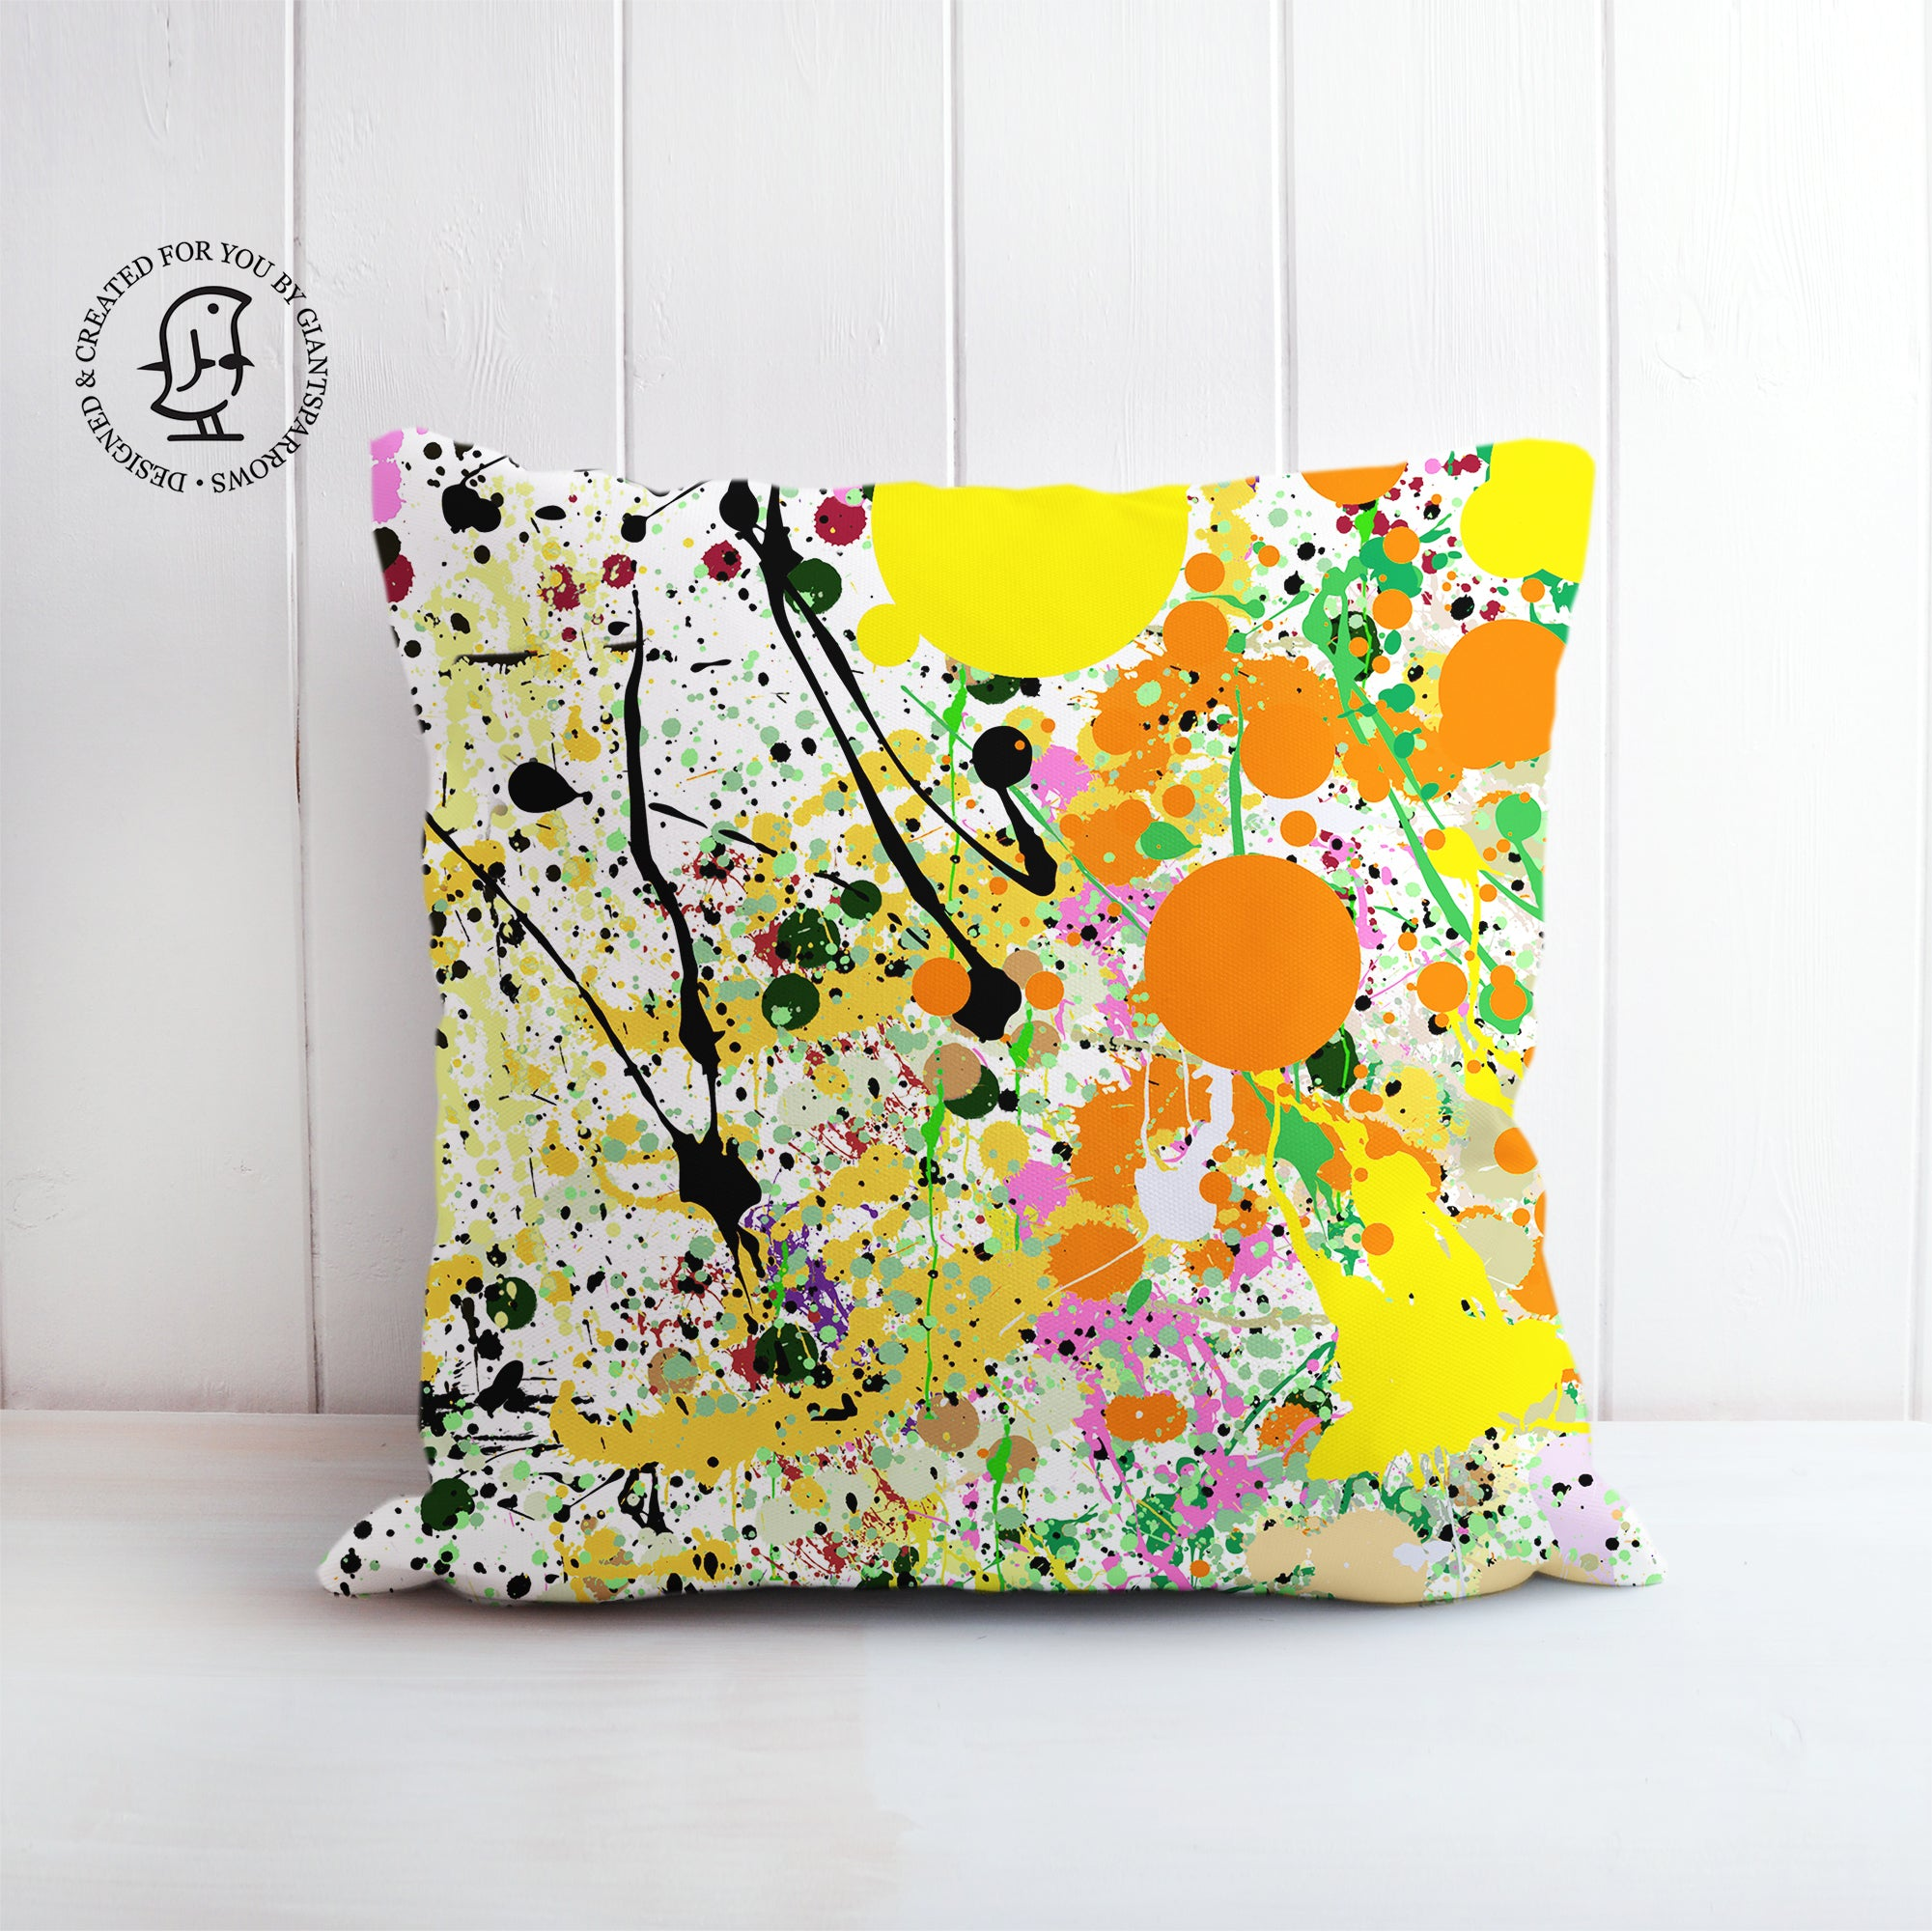 Orange, Black and Yellow Paint Splat Cushion